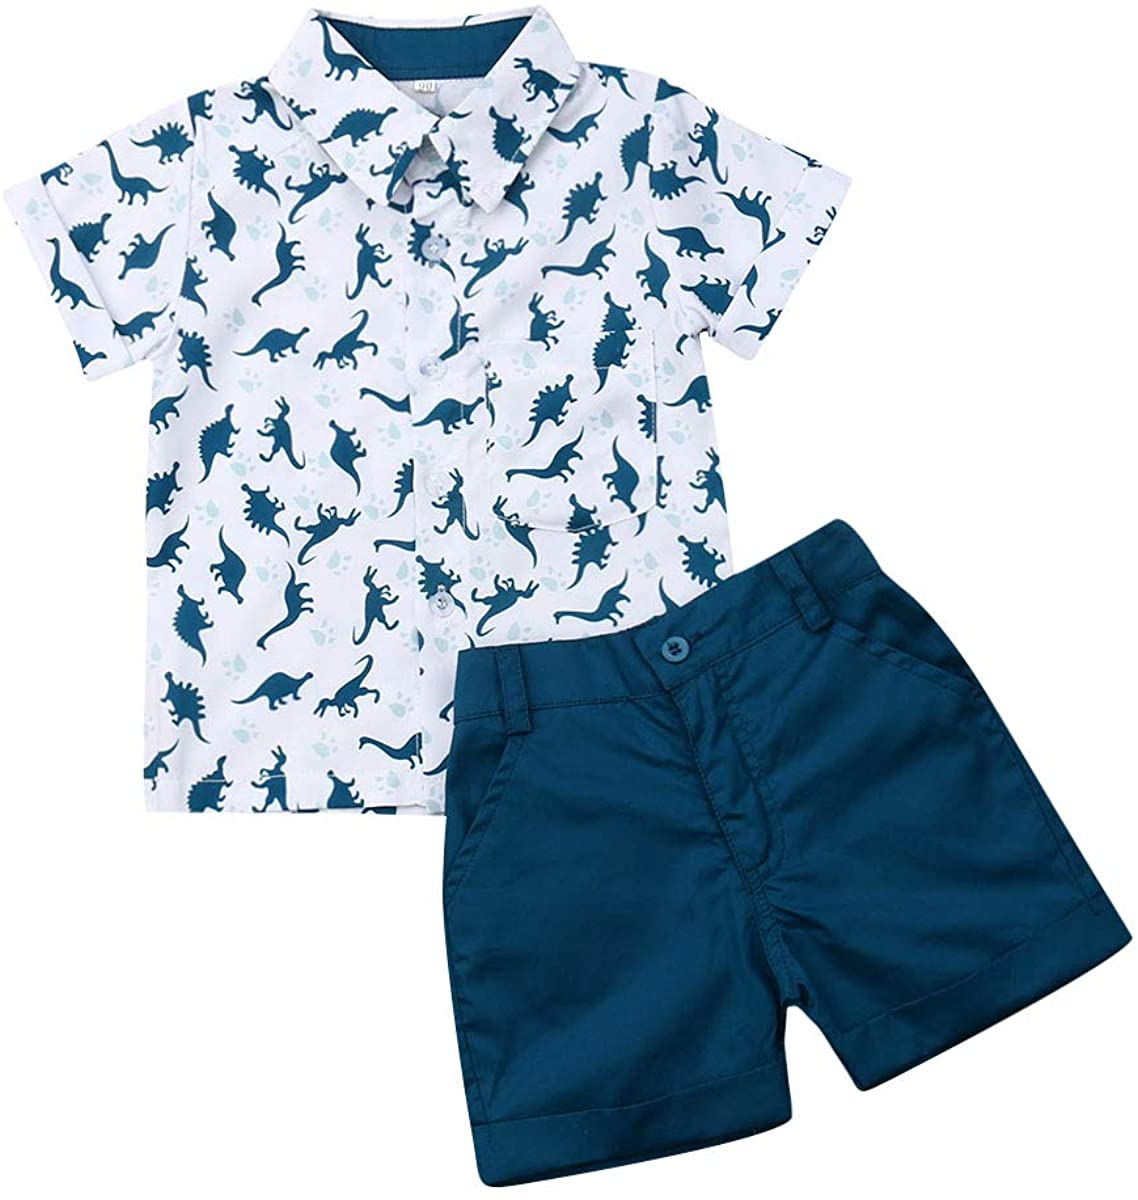 Toddler Baby Boy Shorts Set Short Sleeve Stripe Print Button Down Shirt Tops+Casual Solid Shorts 2 Pcs Summer Outfits